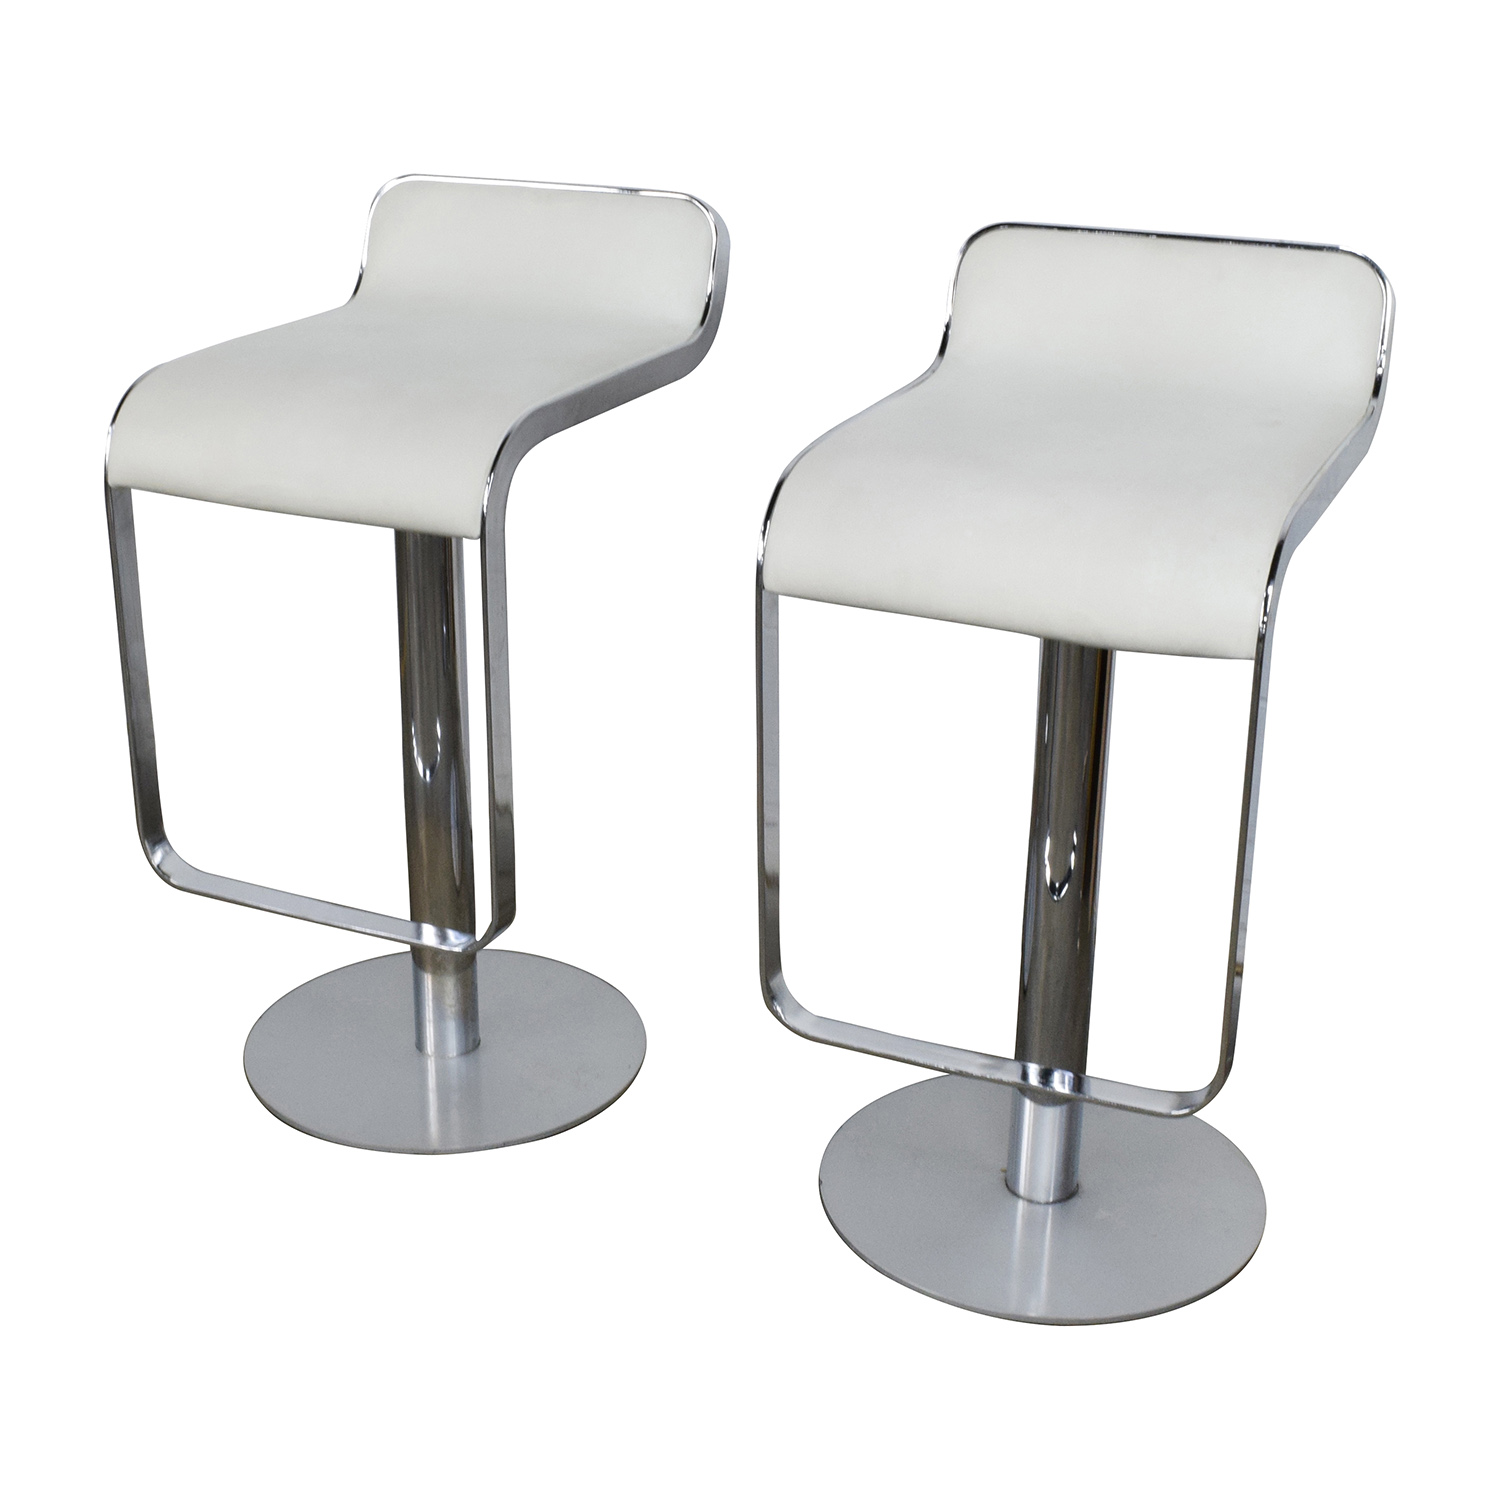 88 OFF All Modern All Modern White Leather Bar Stools  : all modern white leather bar stools second hand from www.furnishare.com size 1500 x 1500 jpeg 250kB